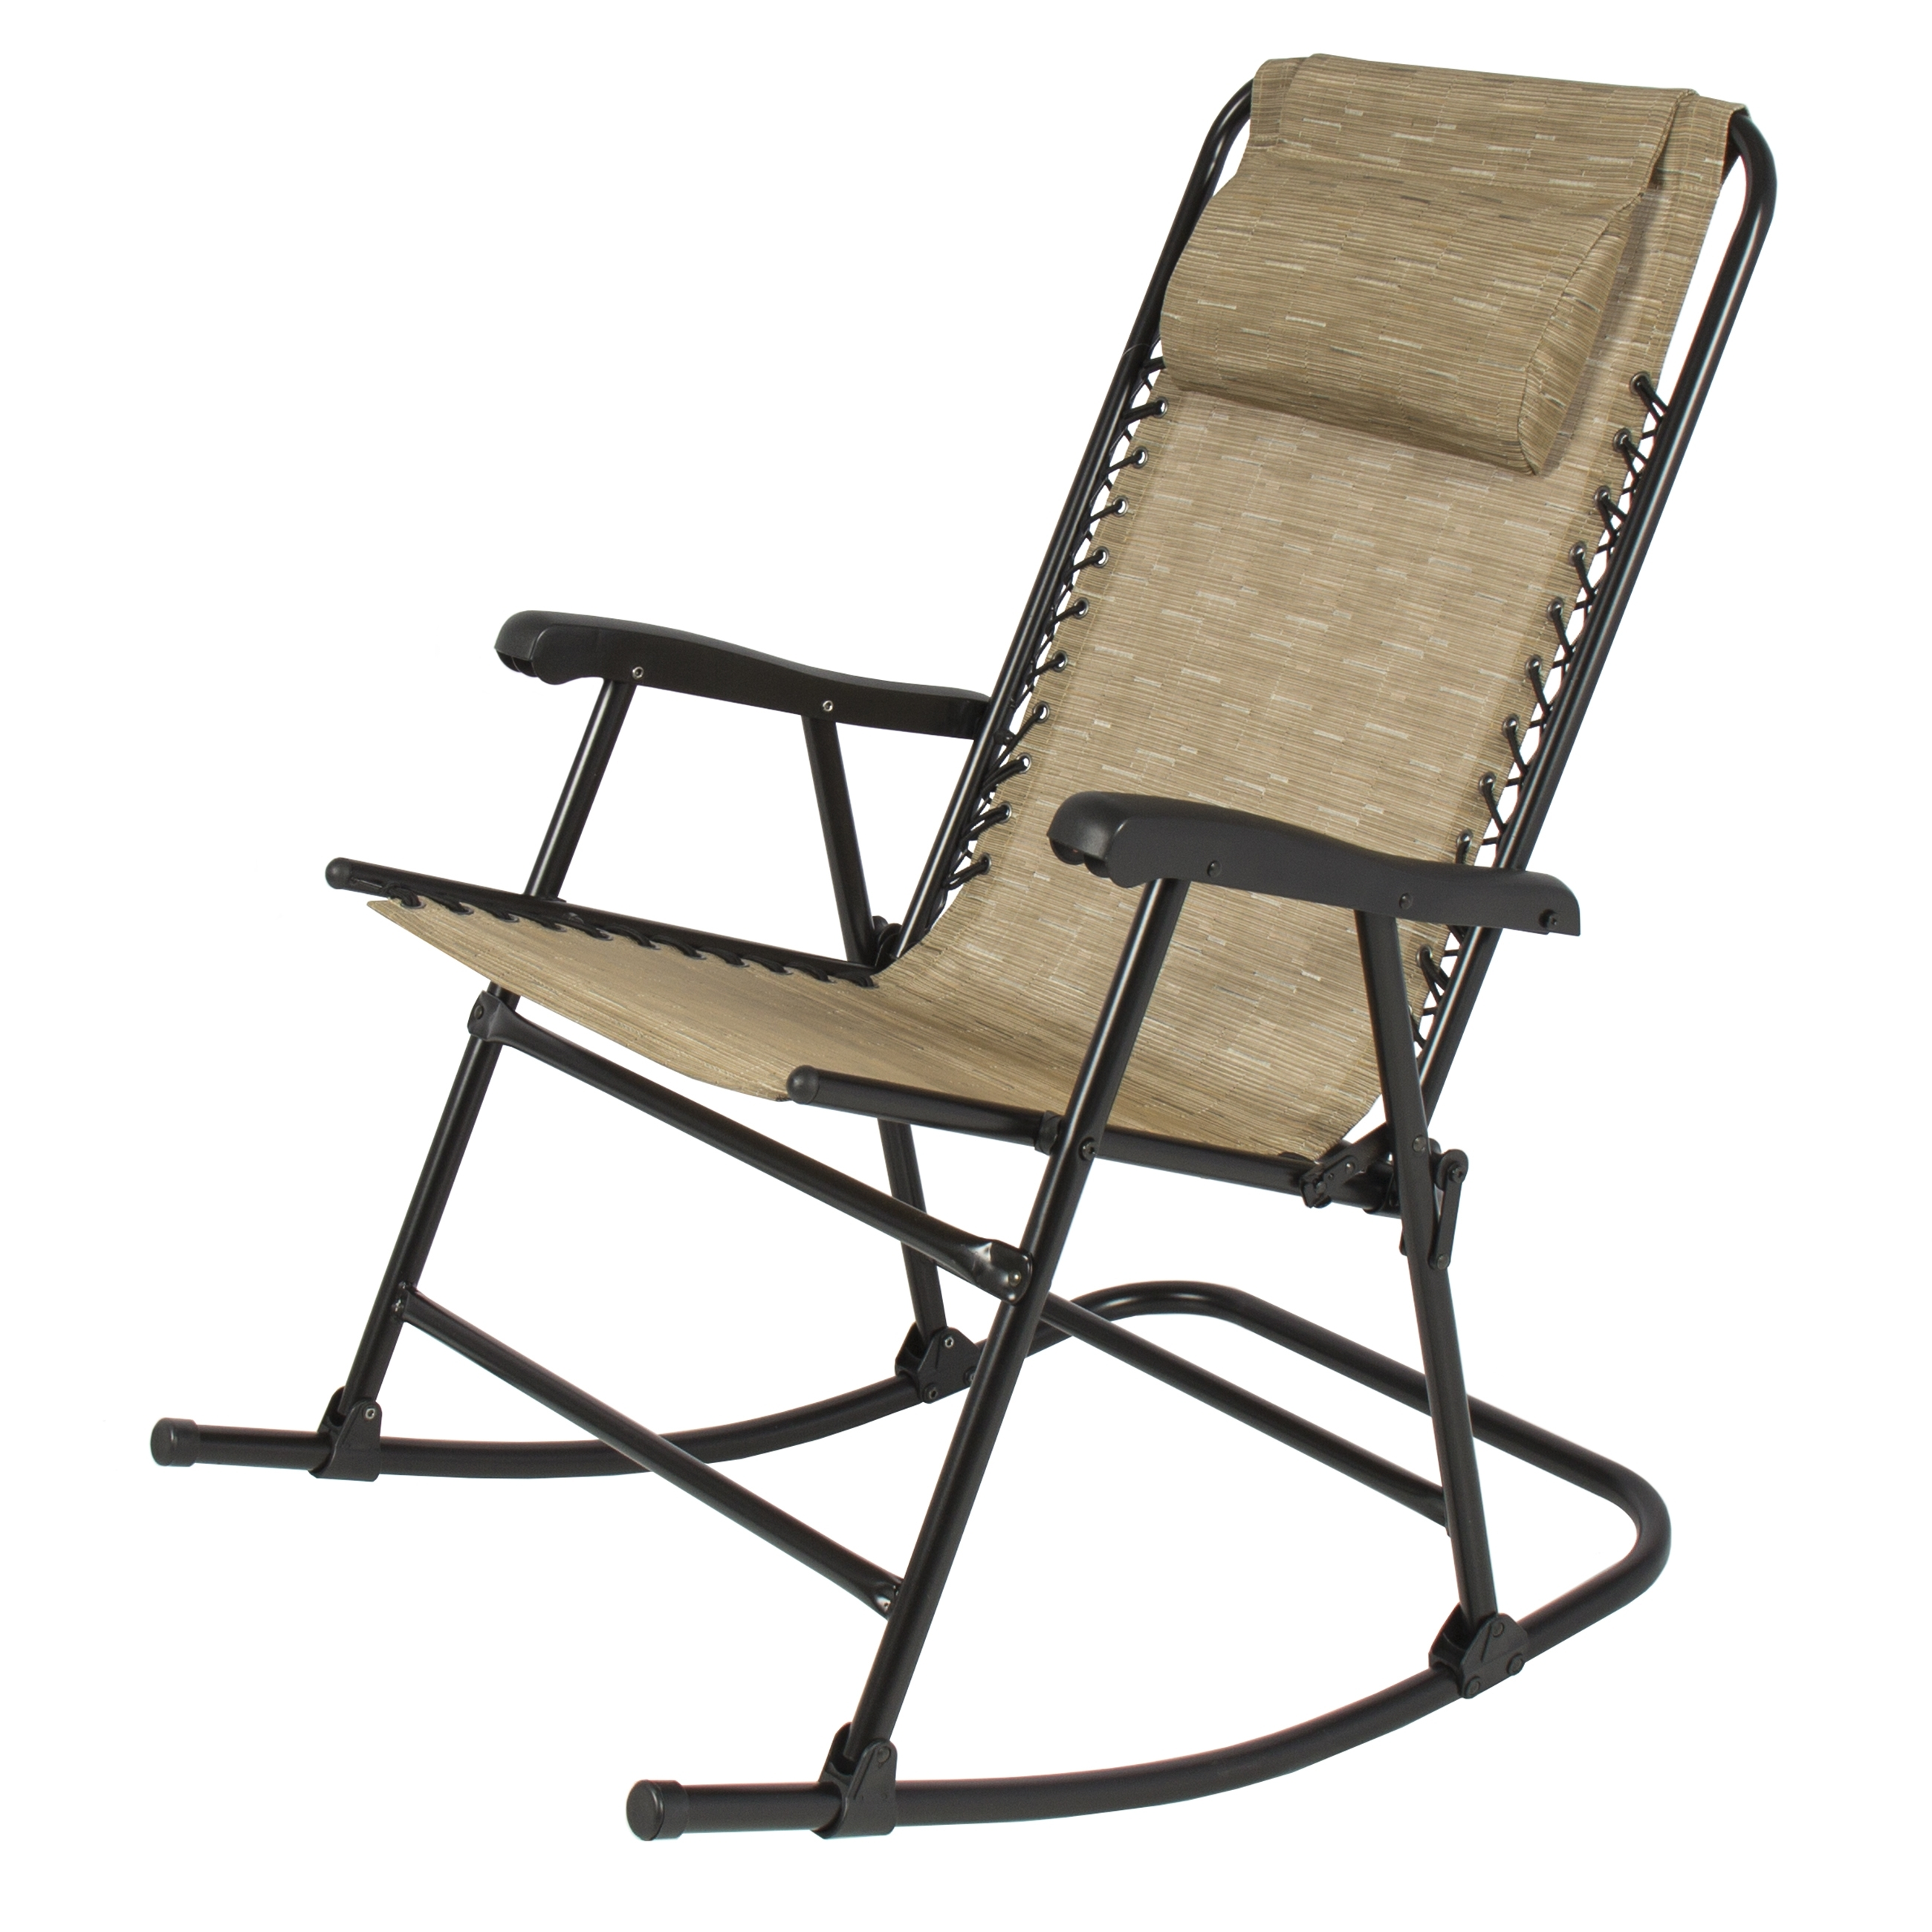 Favorite Rocking Chairs For Porch With Regard To Folding Rocking Chair Foldable Rocker Outdoor Patio Furniture Beige (View 6 of 20)